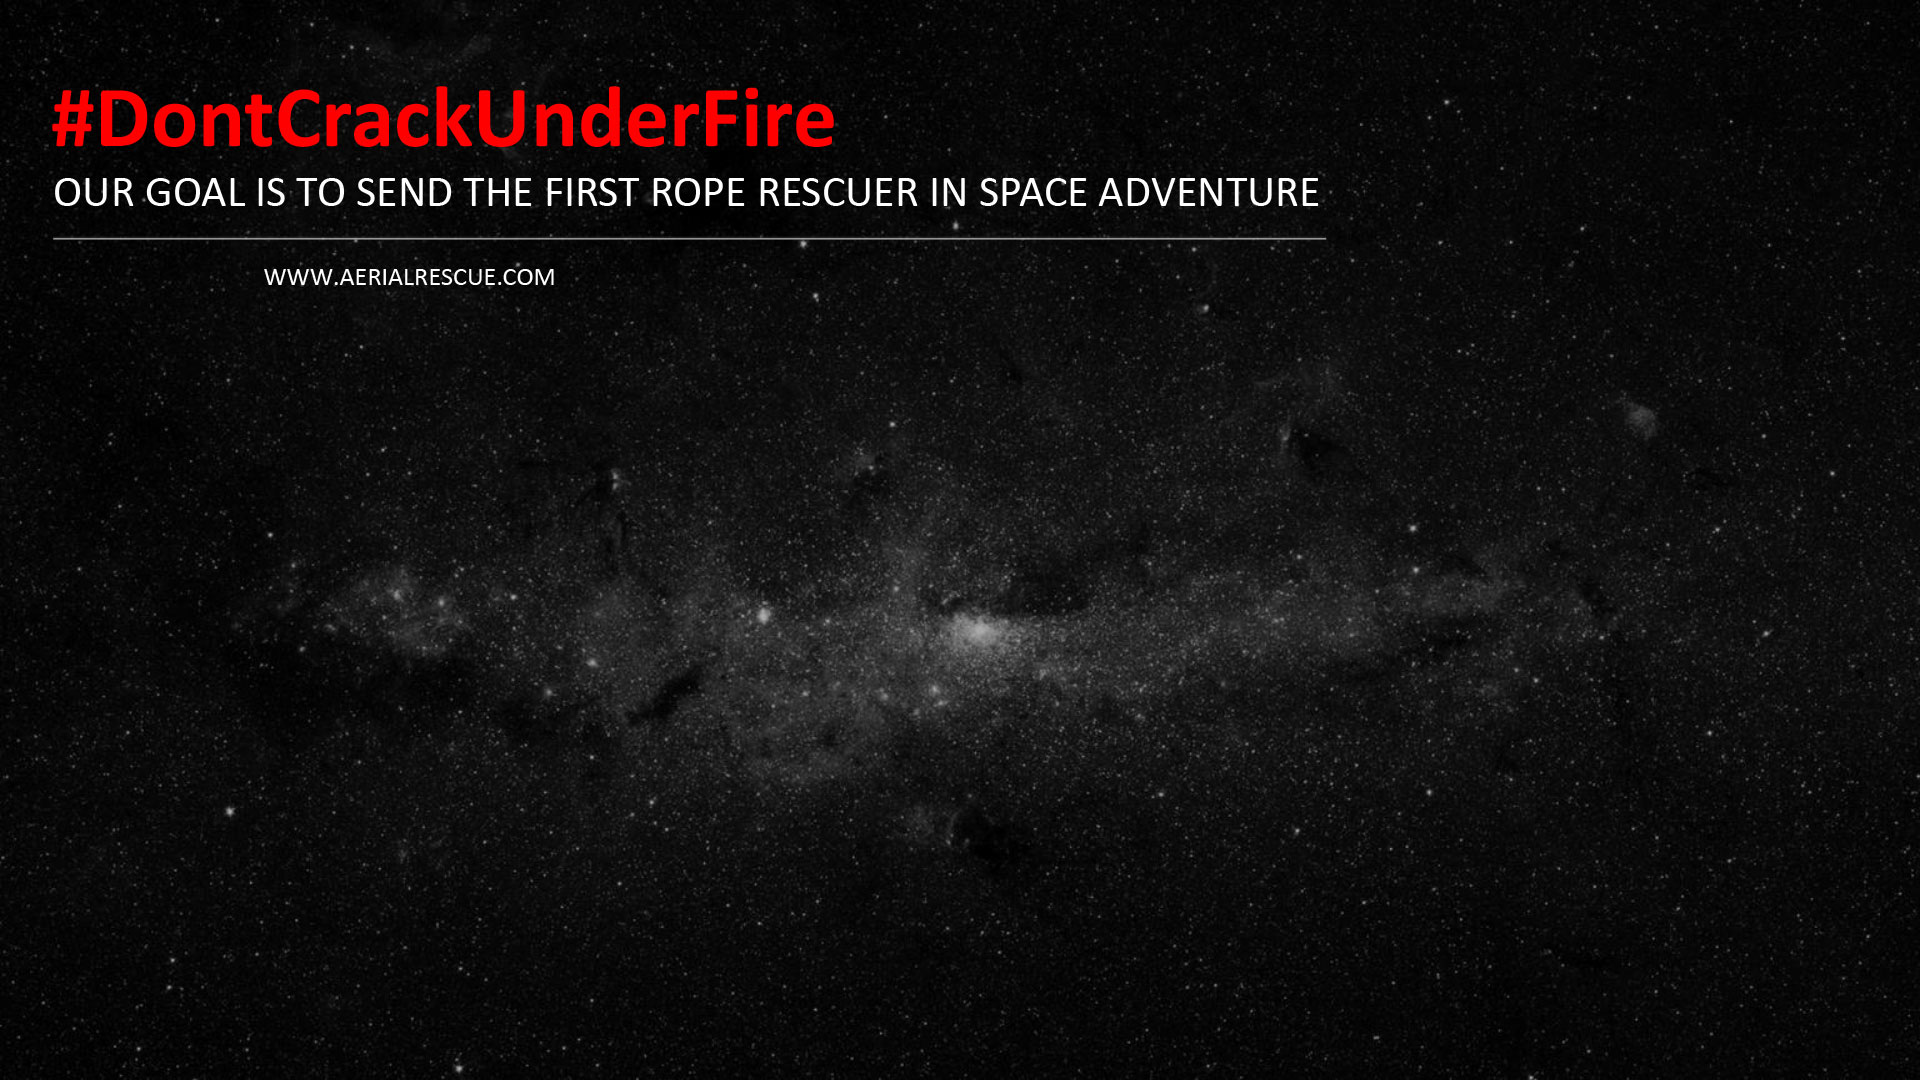 FIRST ROPE RESCUER IN SPACE ADVENTURE